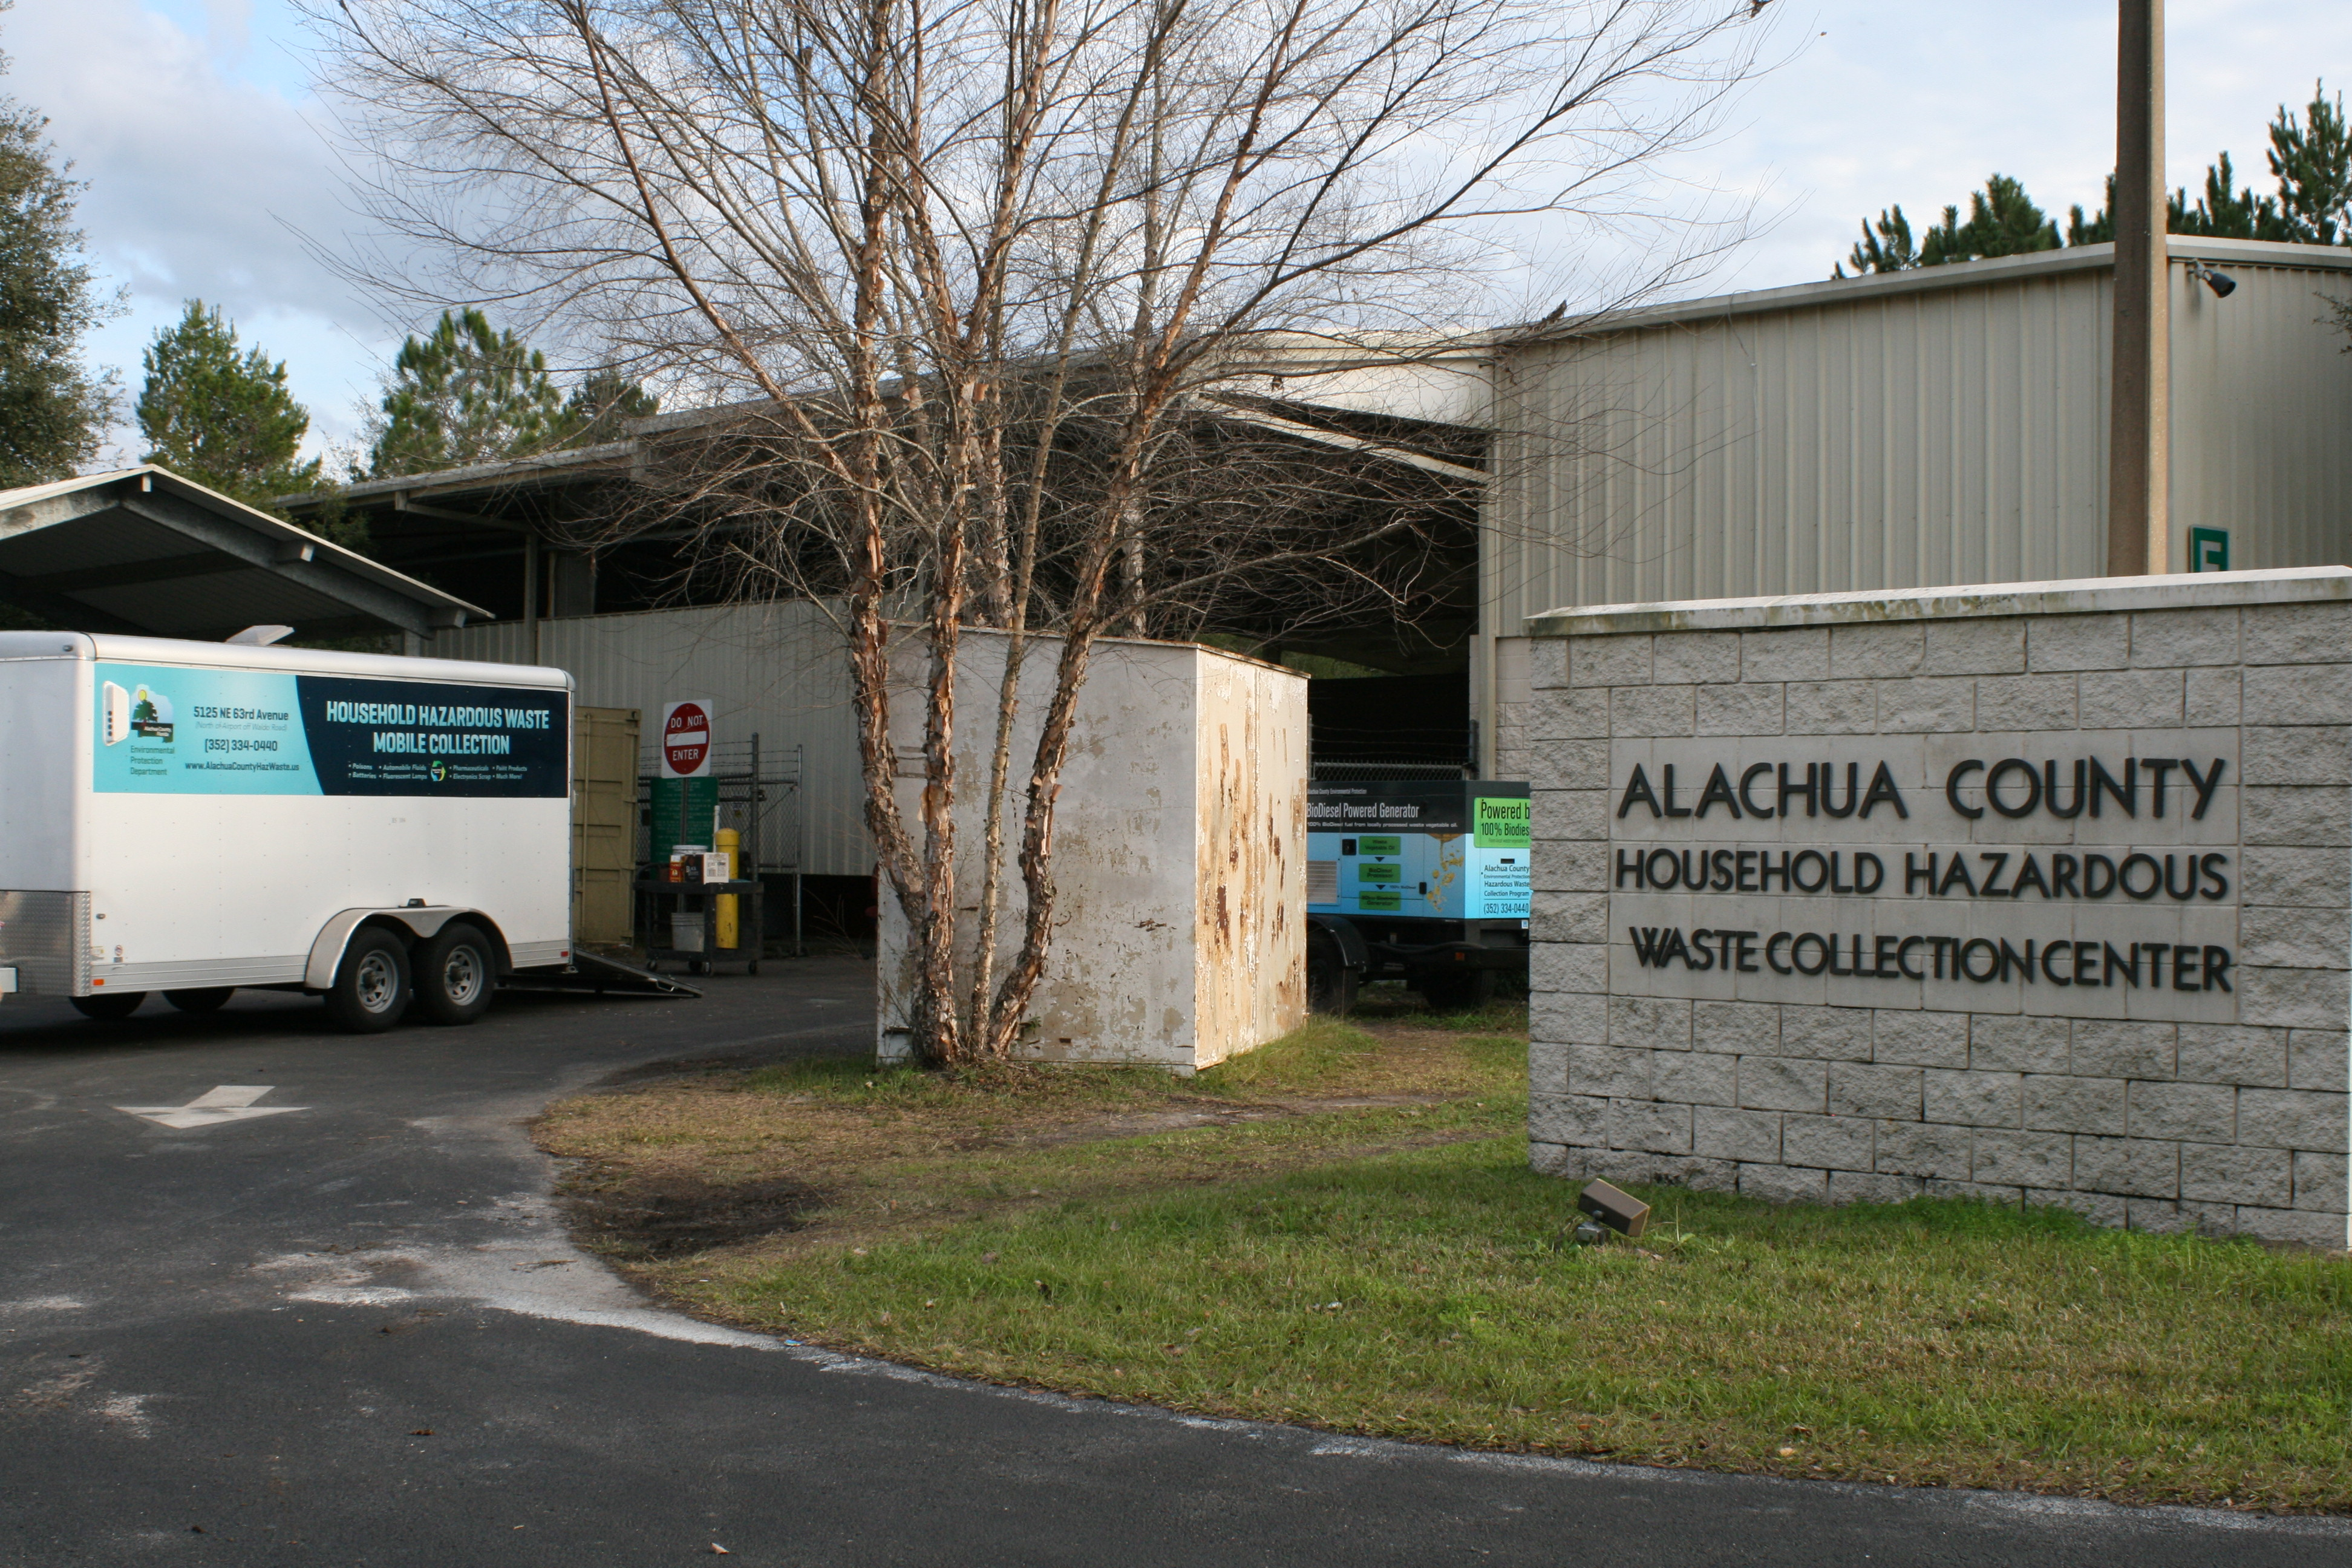 Image showing the entrance sign to the hazardous waste collection center